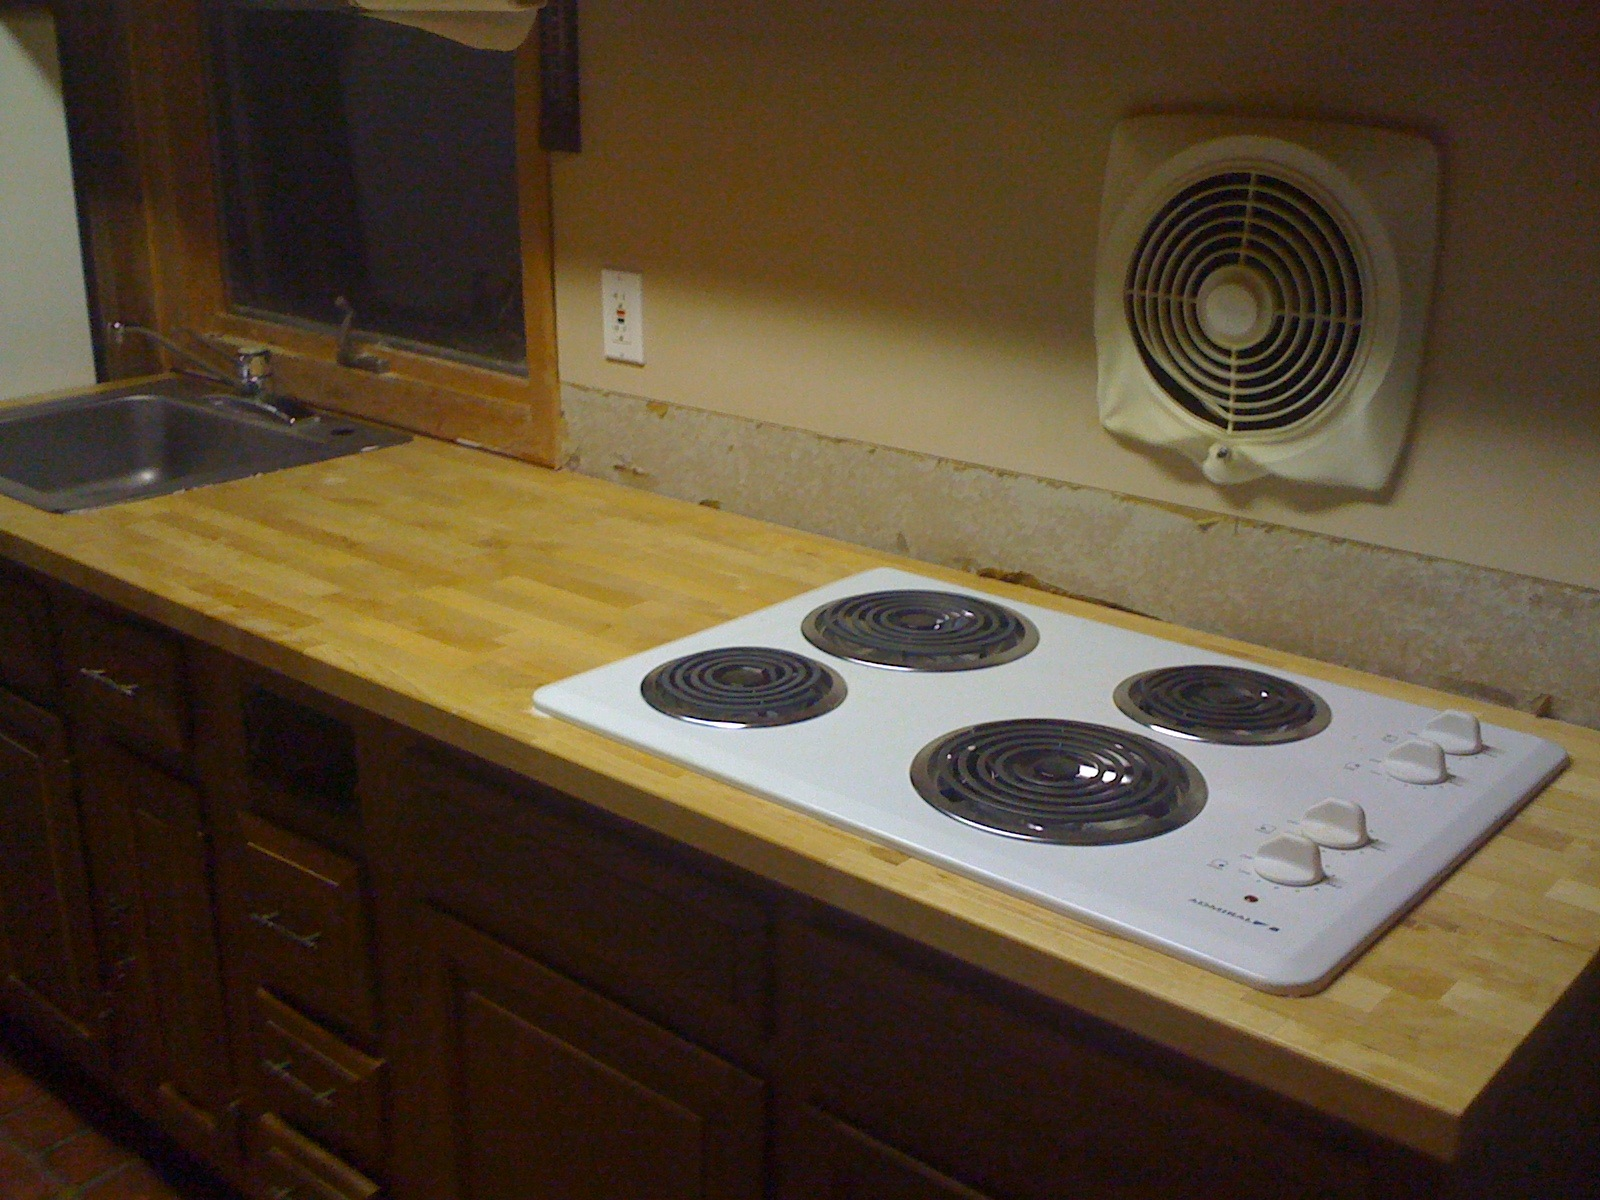 Gap Between Stove And Countertop Rob 39s Musings Ikea To The Counter Top Rescue